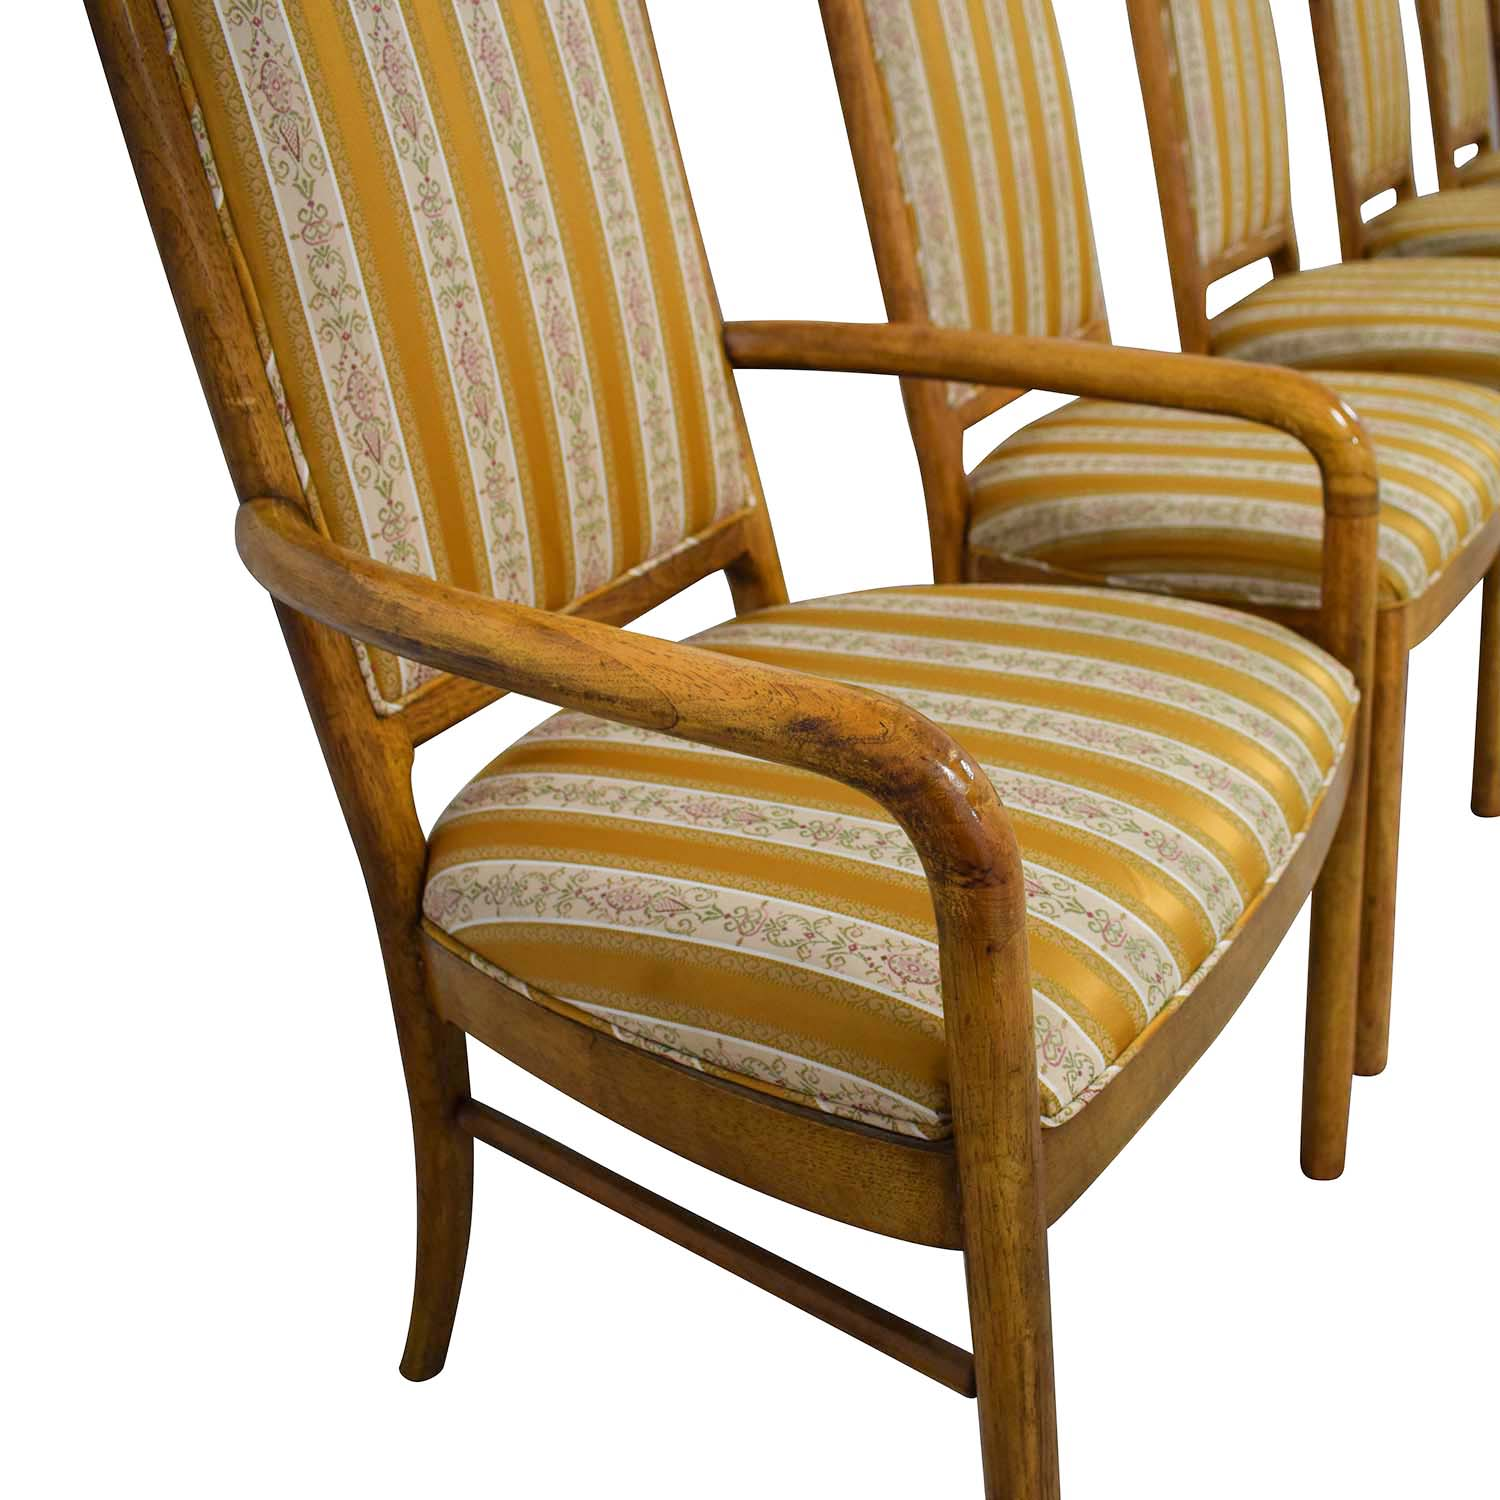 80% OFF   Drexel Heritage Drexel Heritage Dining Chairs / Chairs